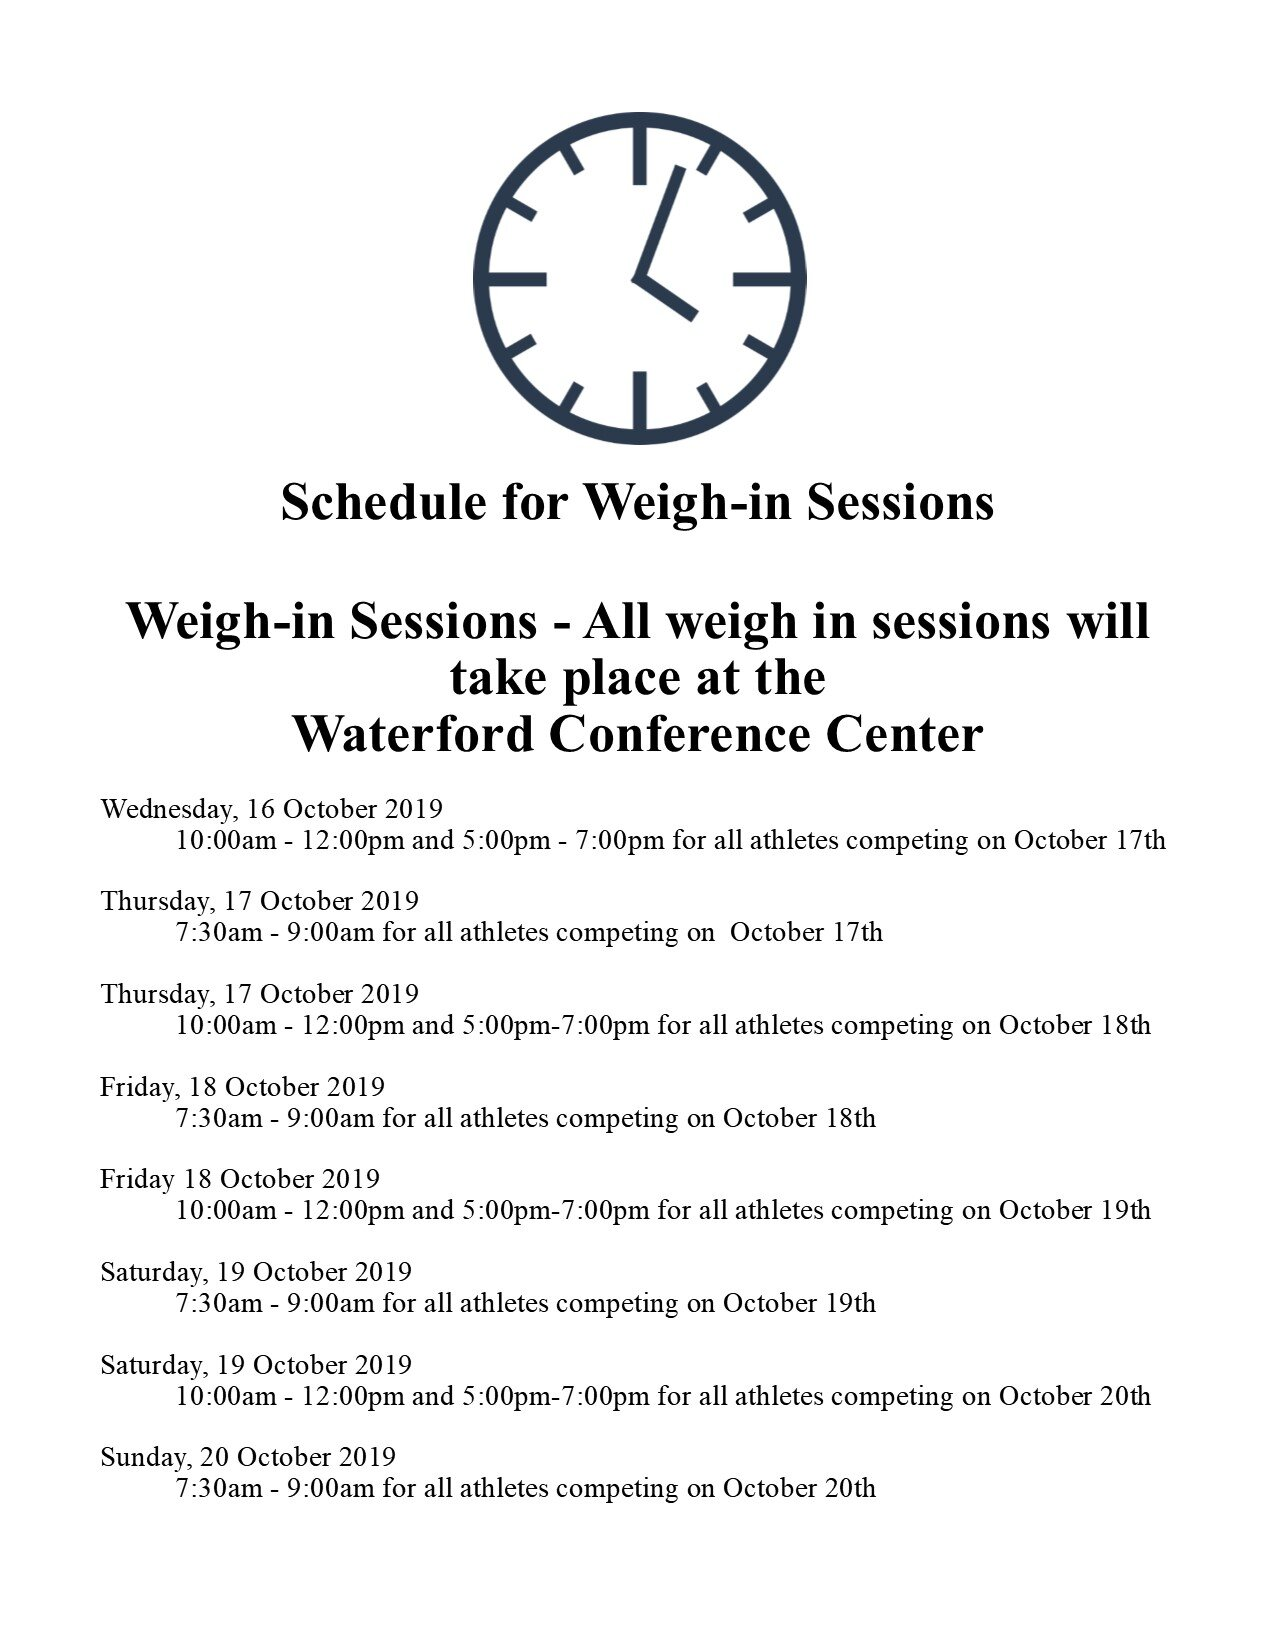 weigh in schedule.jpg